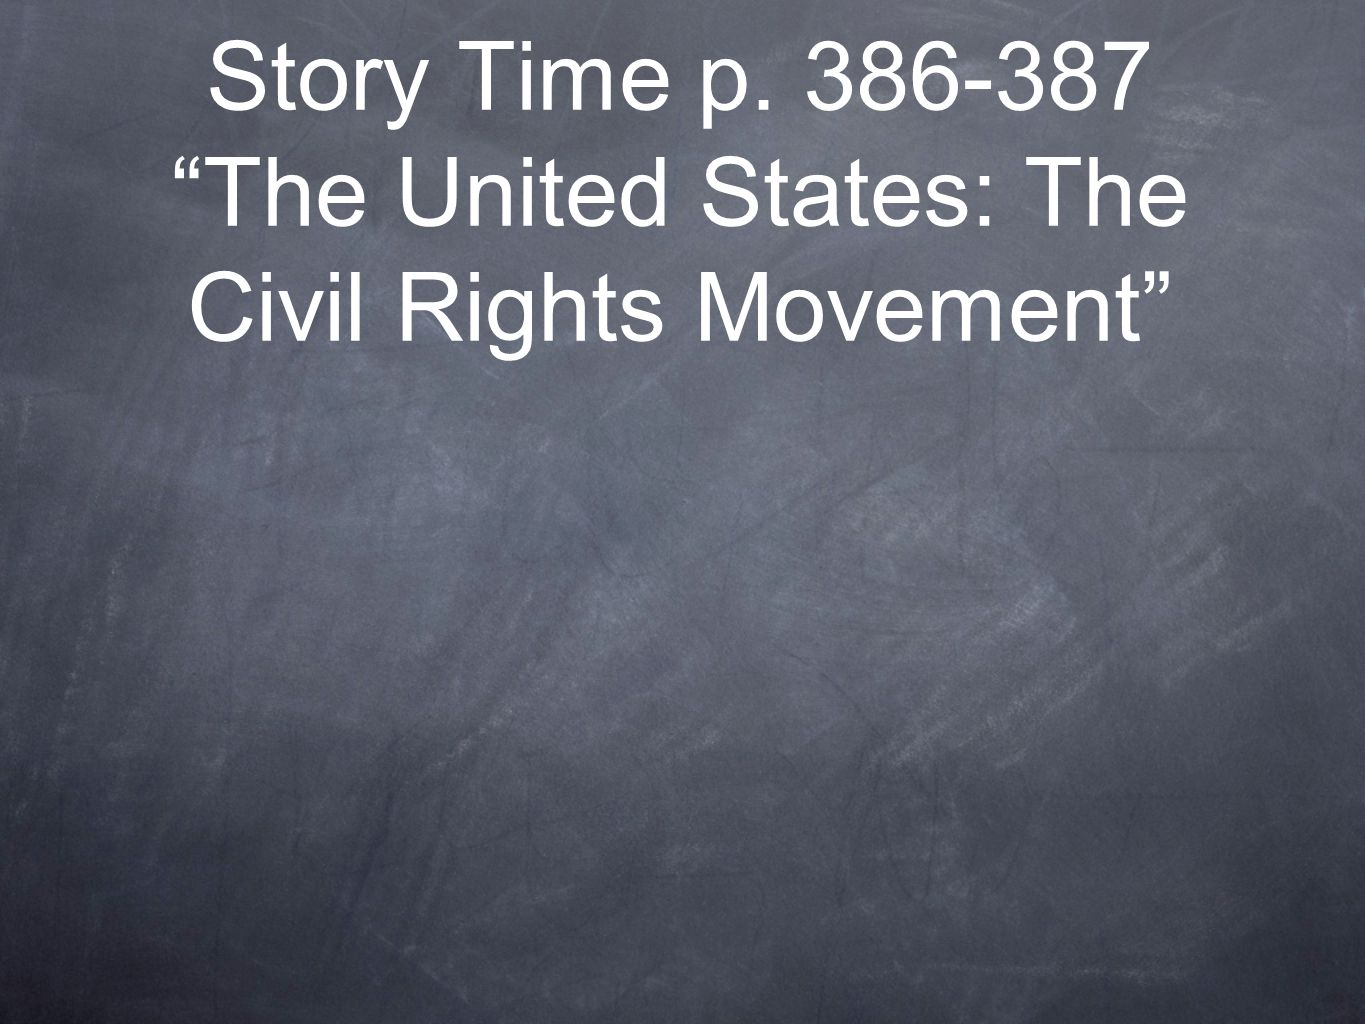 The united states civil rights movement